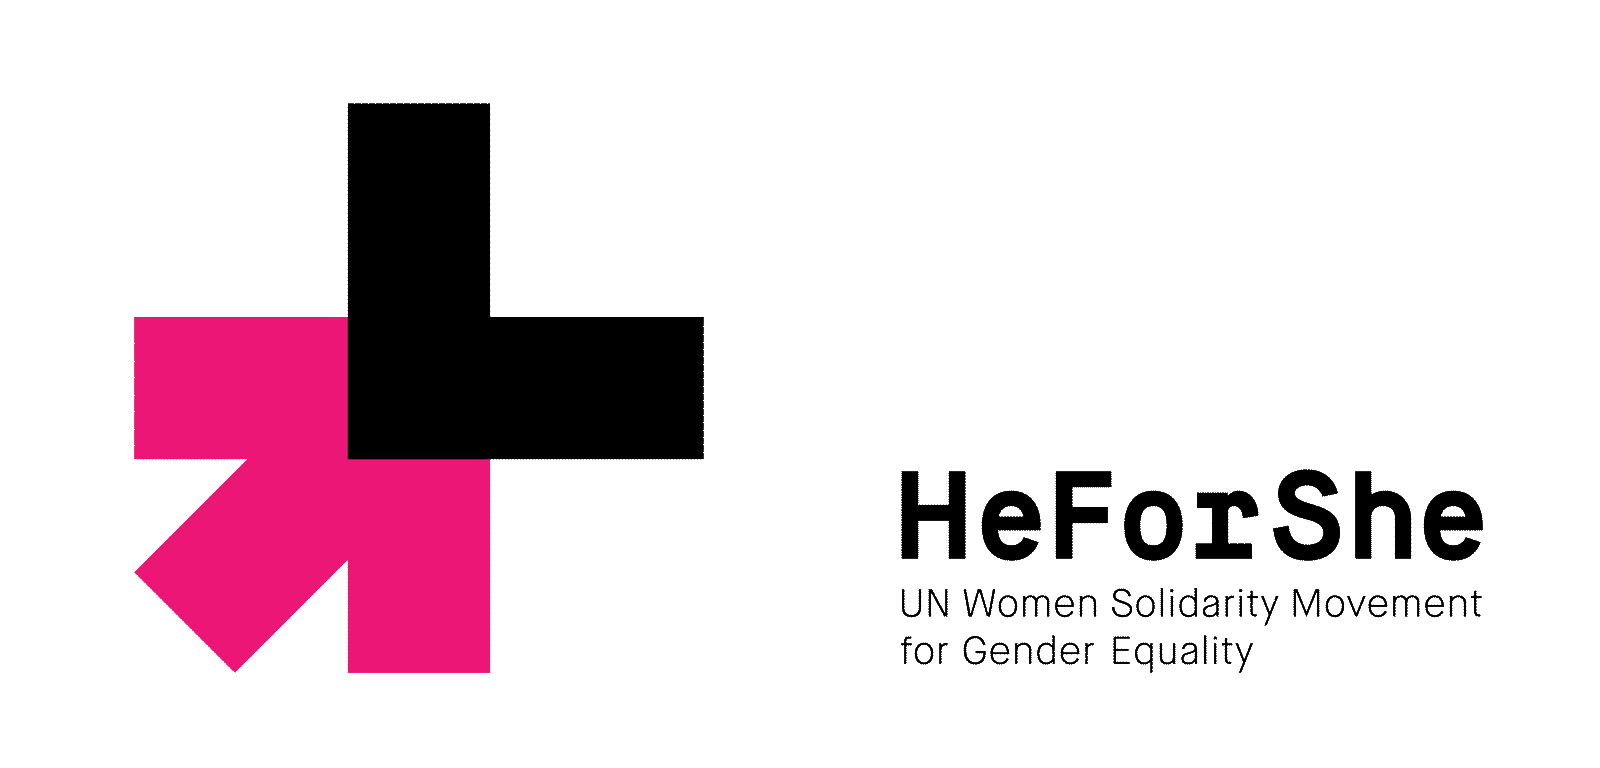 gender equality essays st jerome s heforshe gender equity essay  st jerome s heforshe gender equity essay contest st jerome s st jerome s heforshe gender